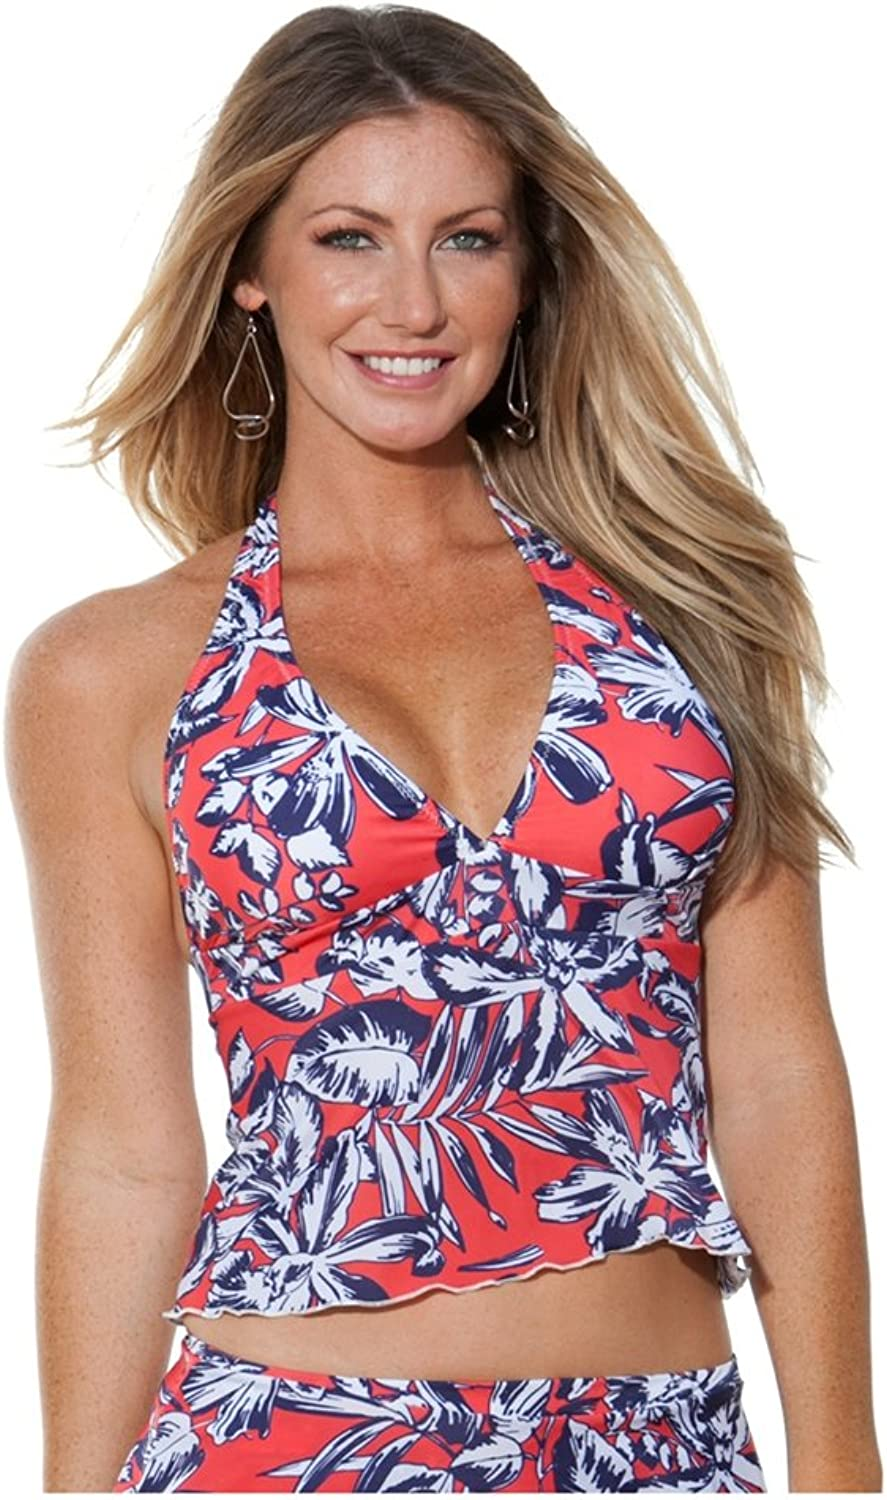 bluee Sky Swimwear Tropical Isle Halter Baby Doll Top (Top Only) Size  XL